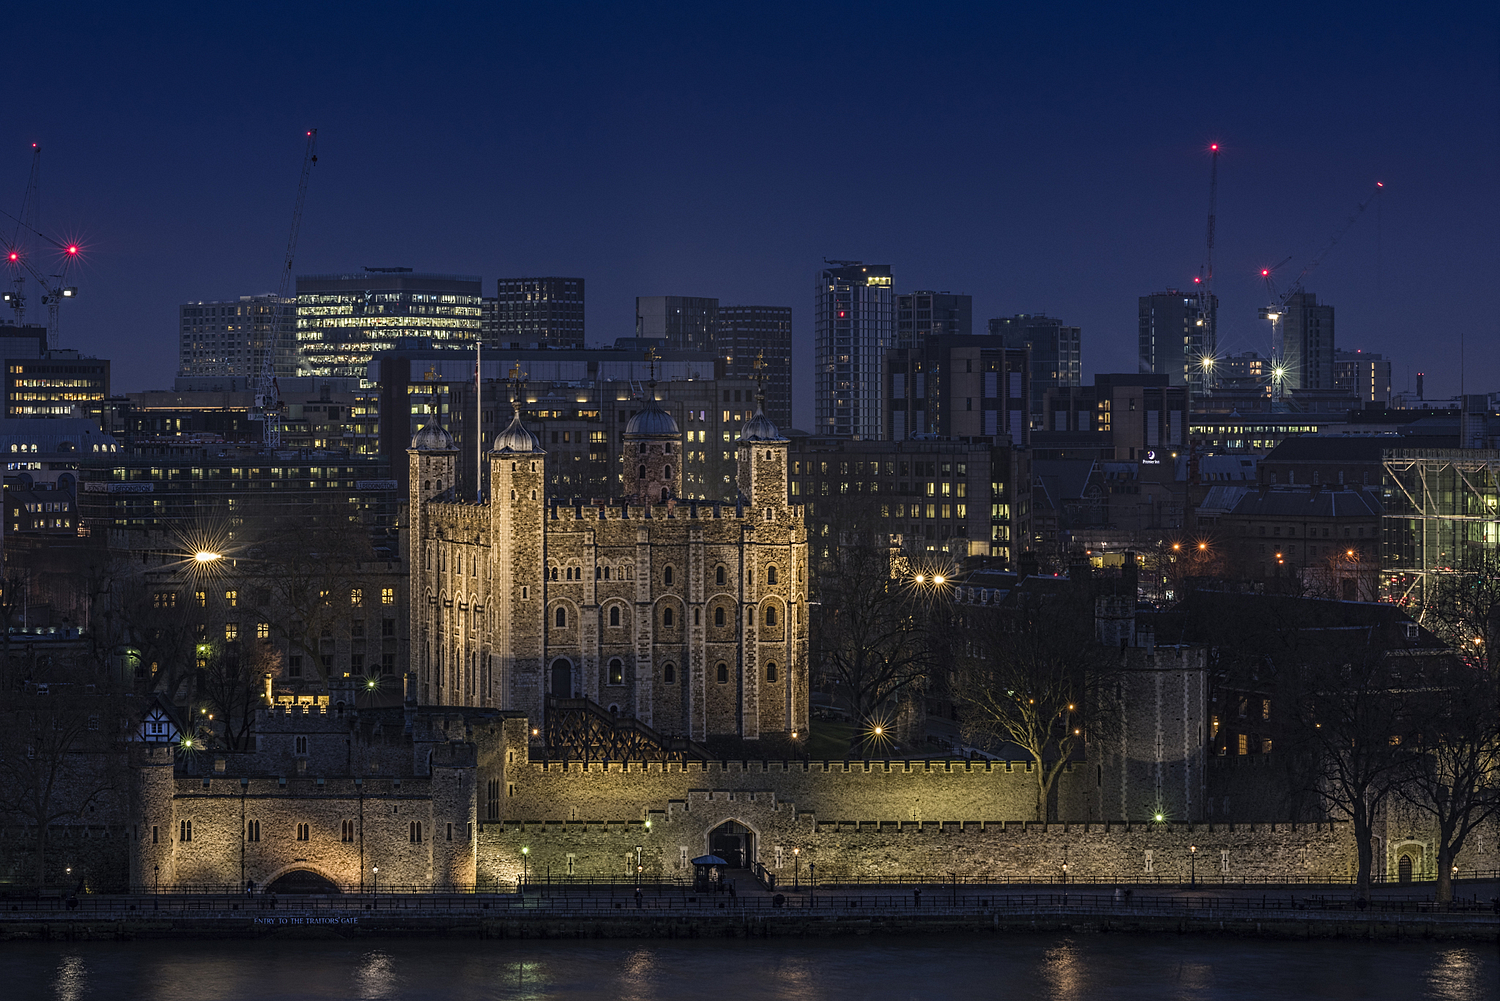 Tower of London at night, London